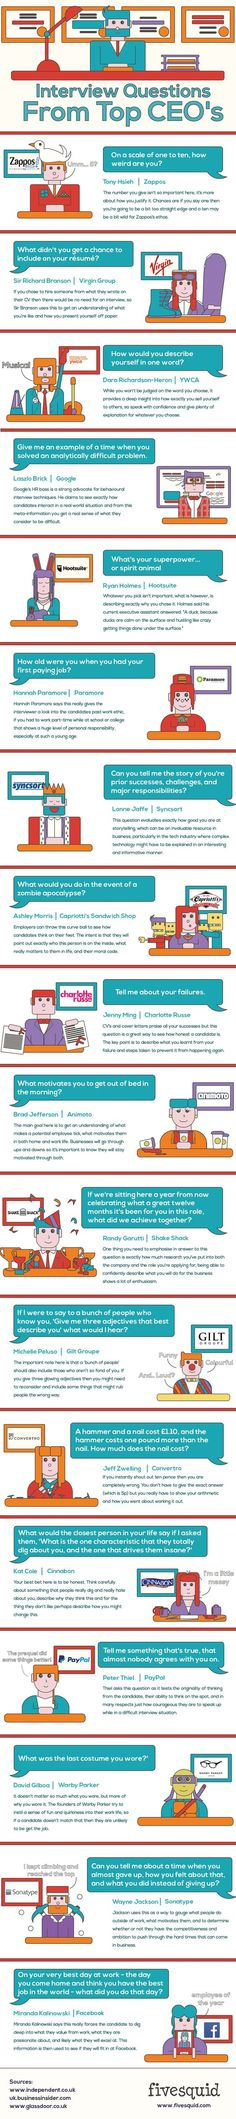 18 Great Interview Questions From Top CEOs (Infographic)